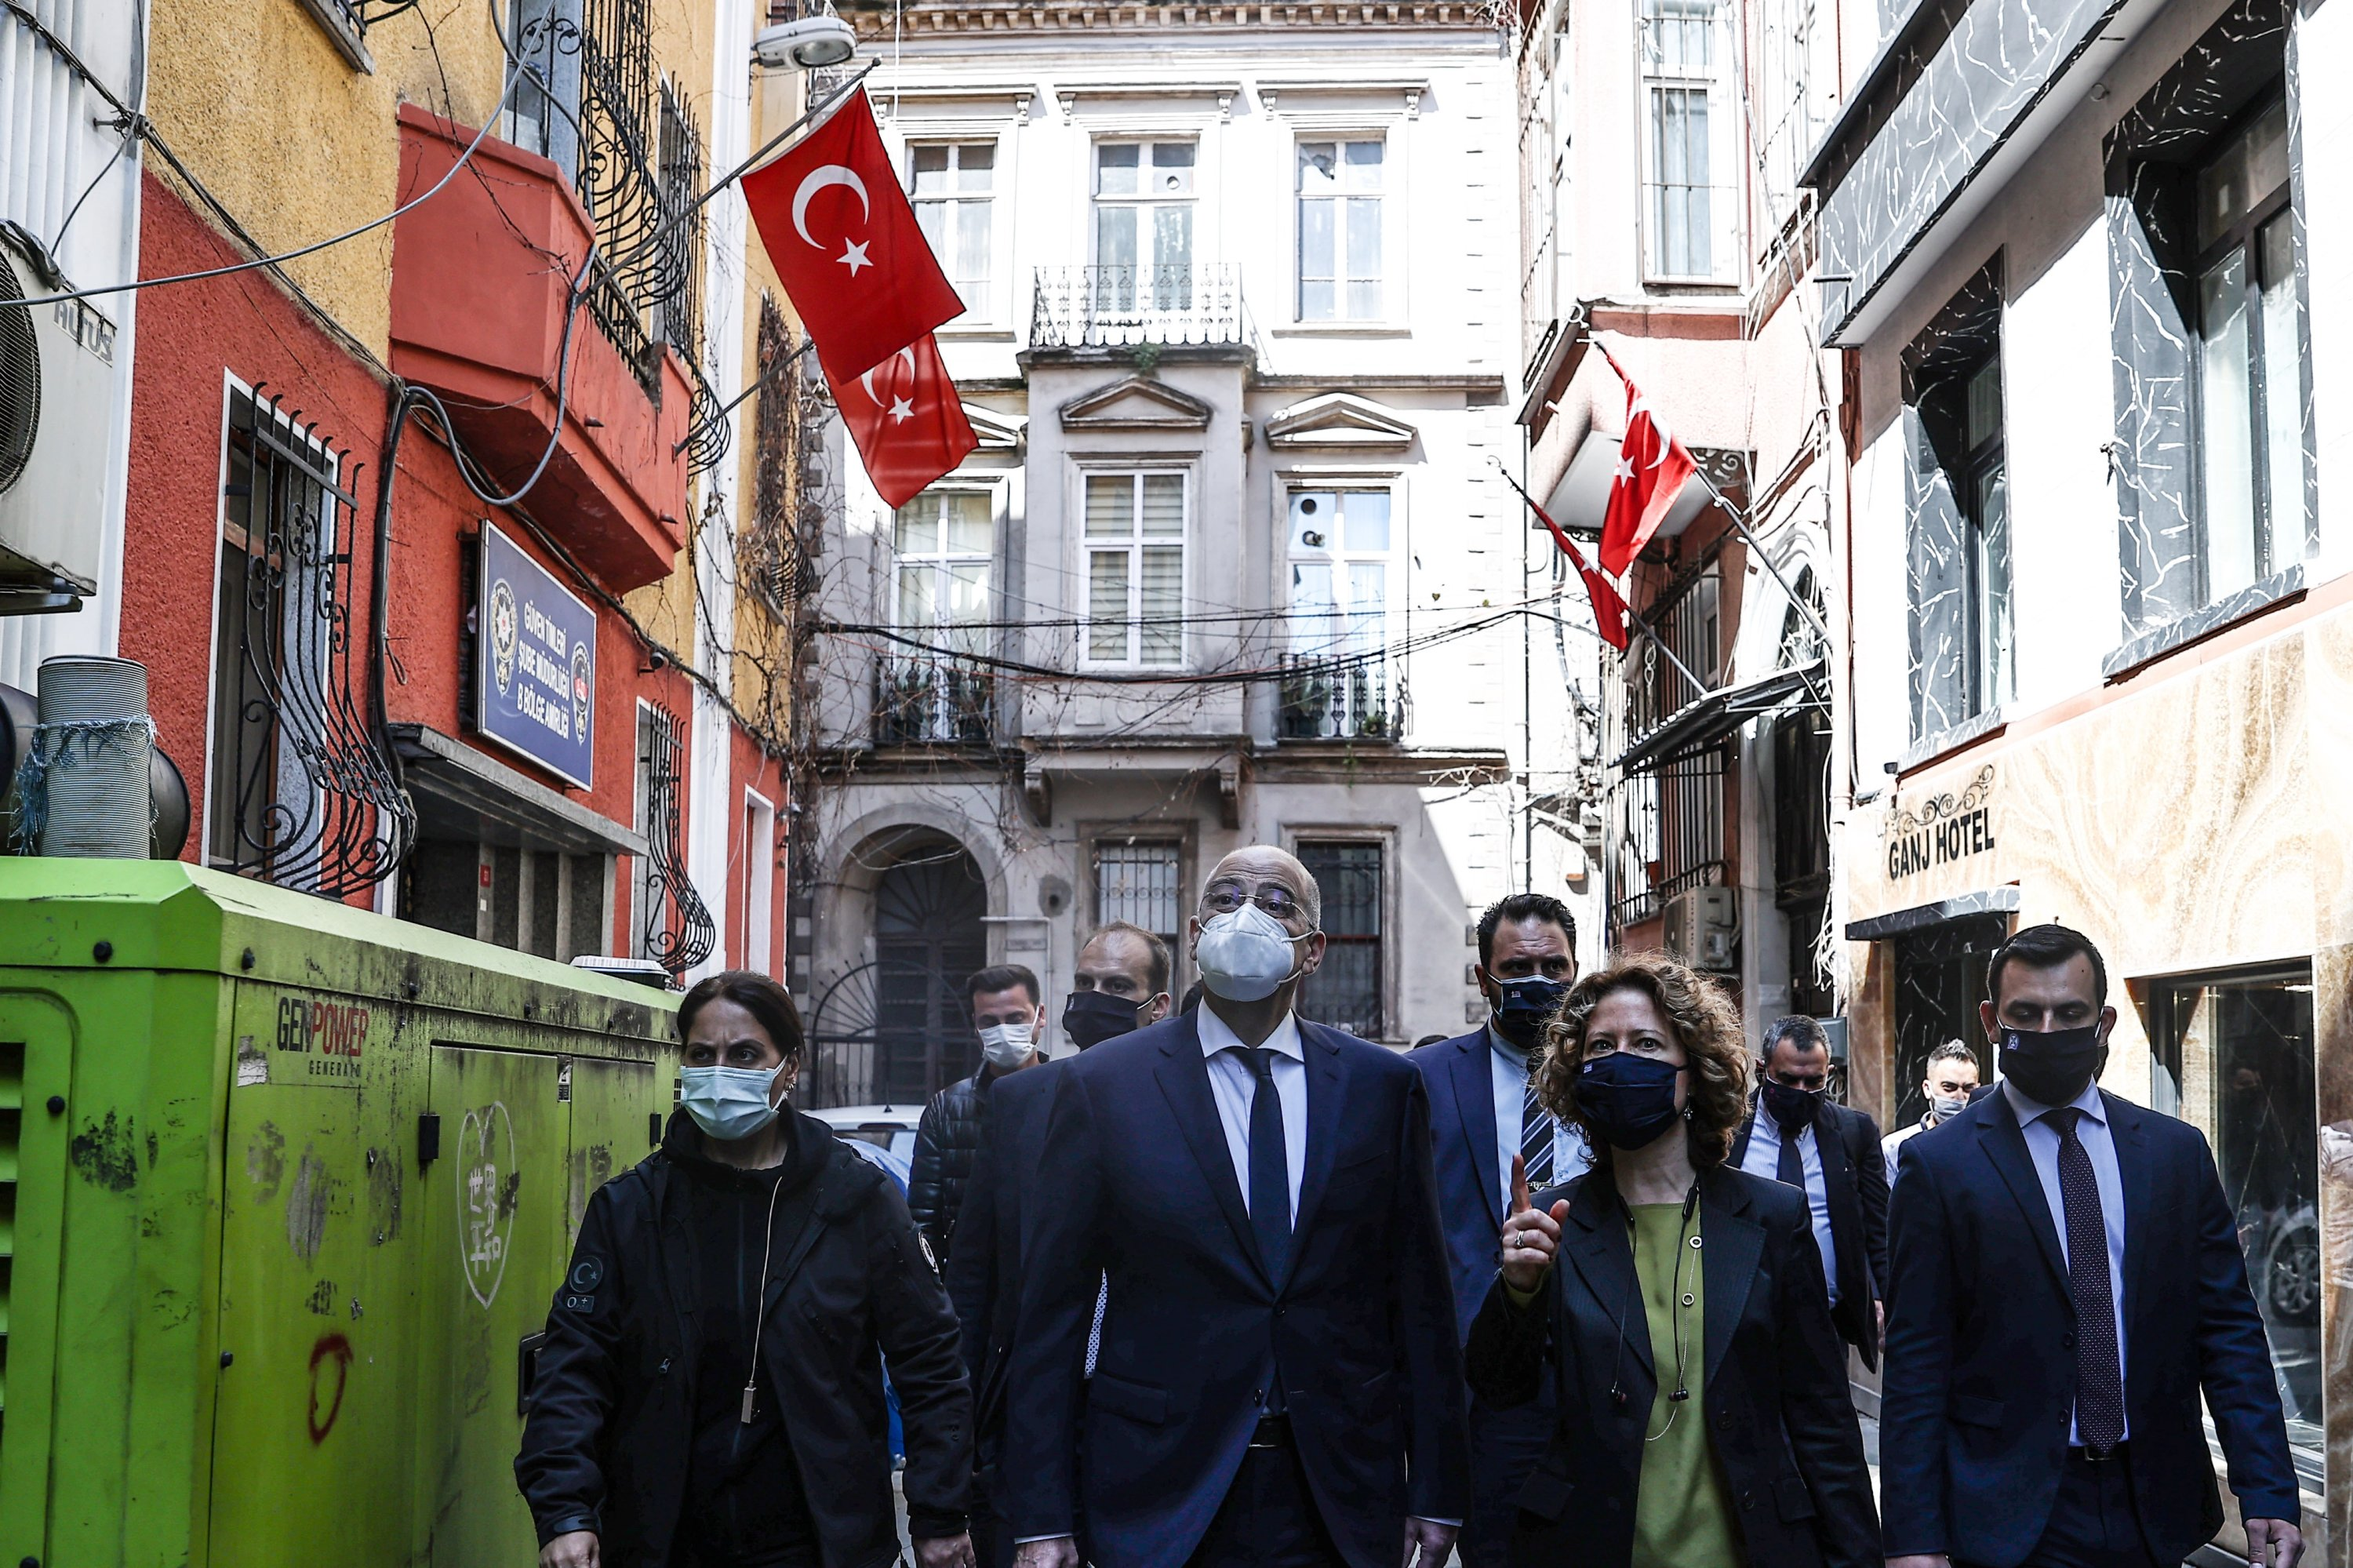 Greek Foreign Minister Nikos Dendias is having a short walk to visit a private Greek school in Taksim district of Istanbul, Turkey, April 14, 2021. (AA)